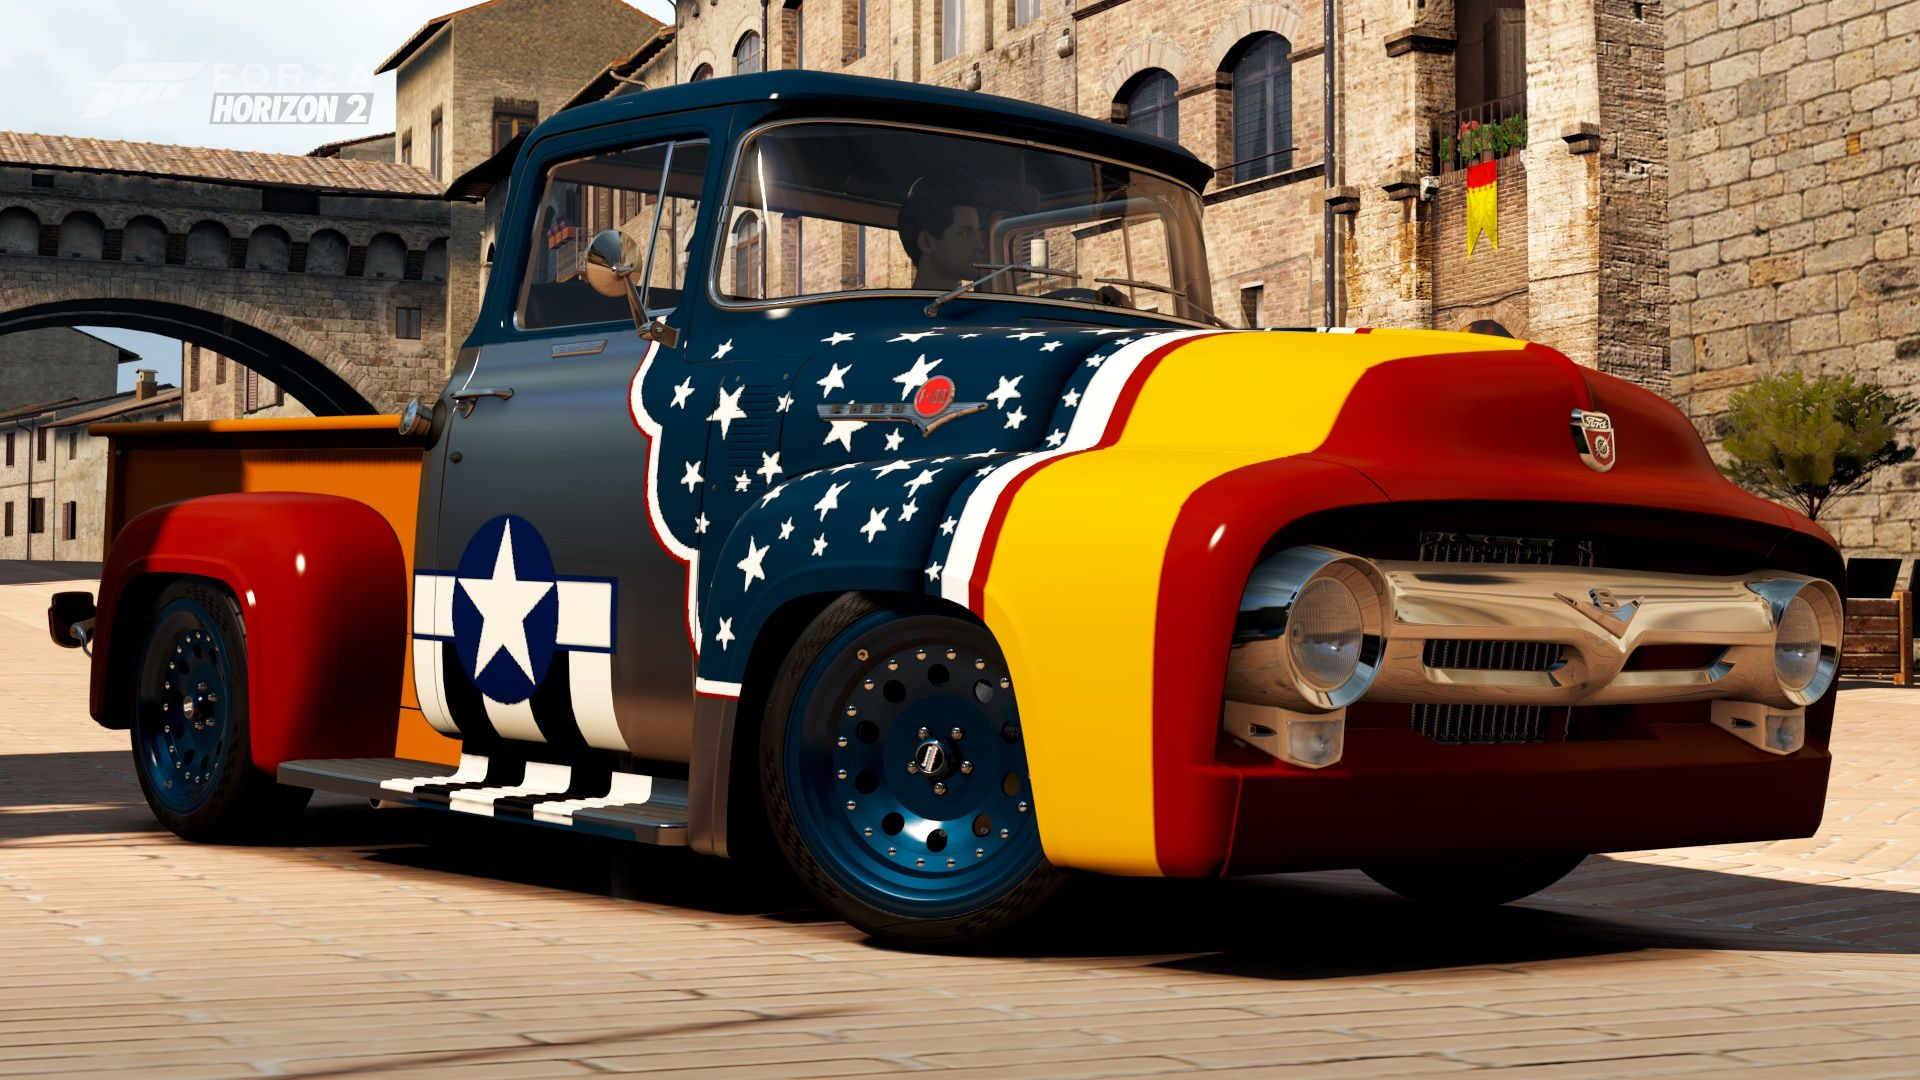 1954 Ford F100 Pickup Truck All About The Paint Job 4x2 Pick